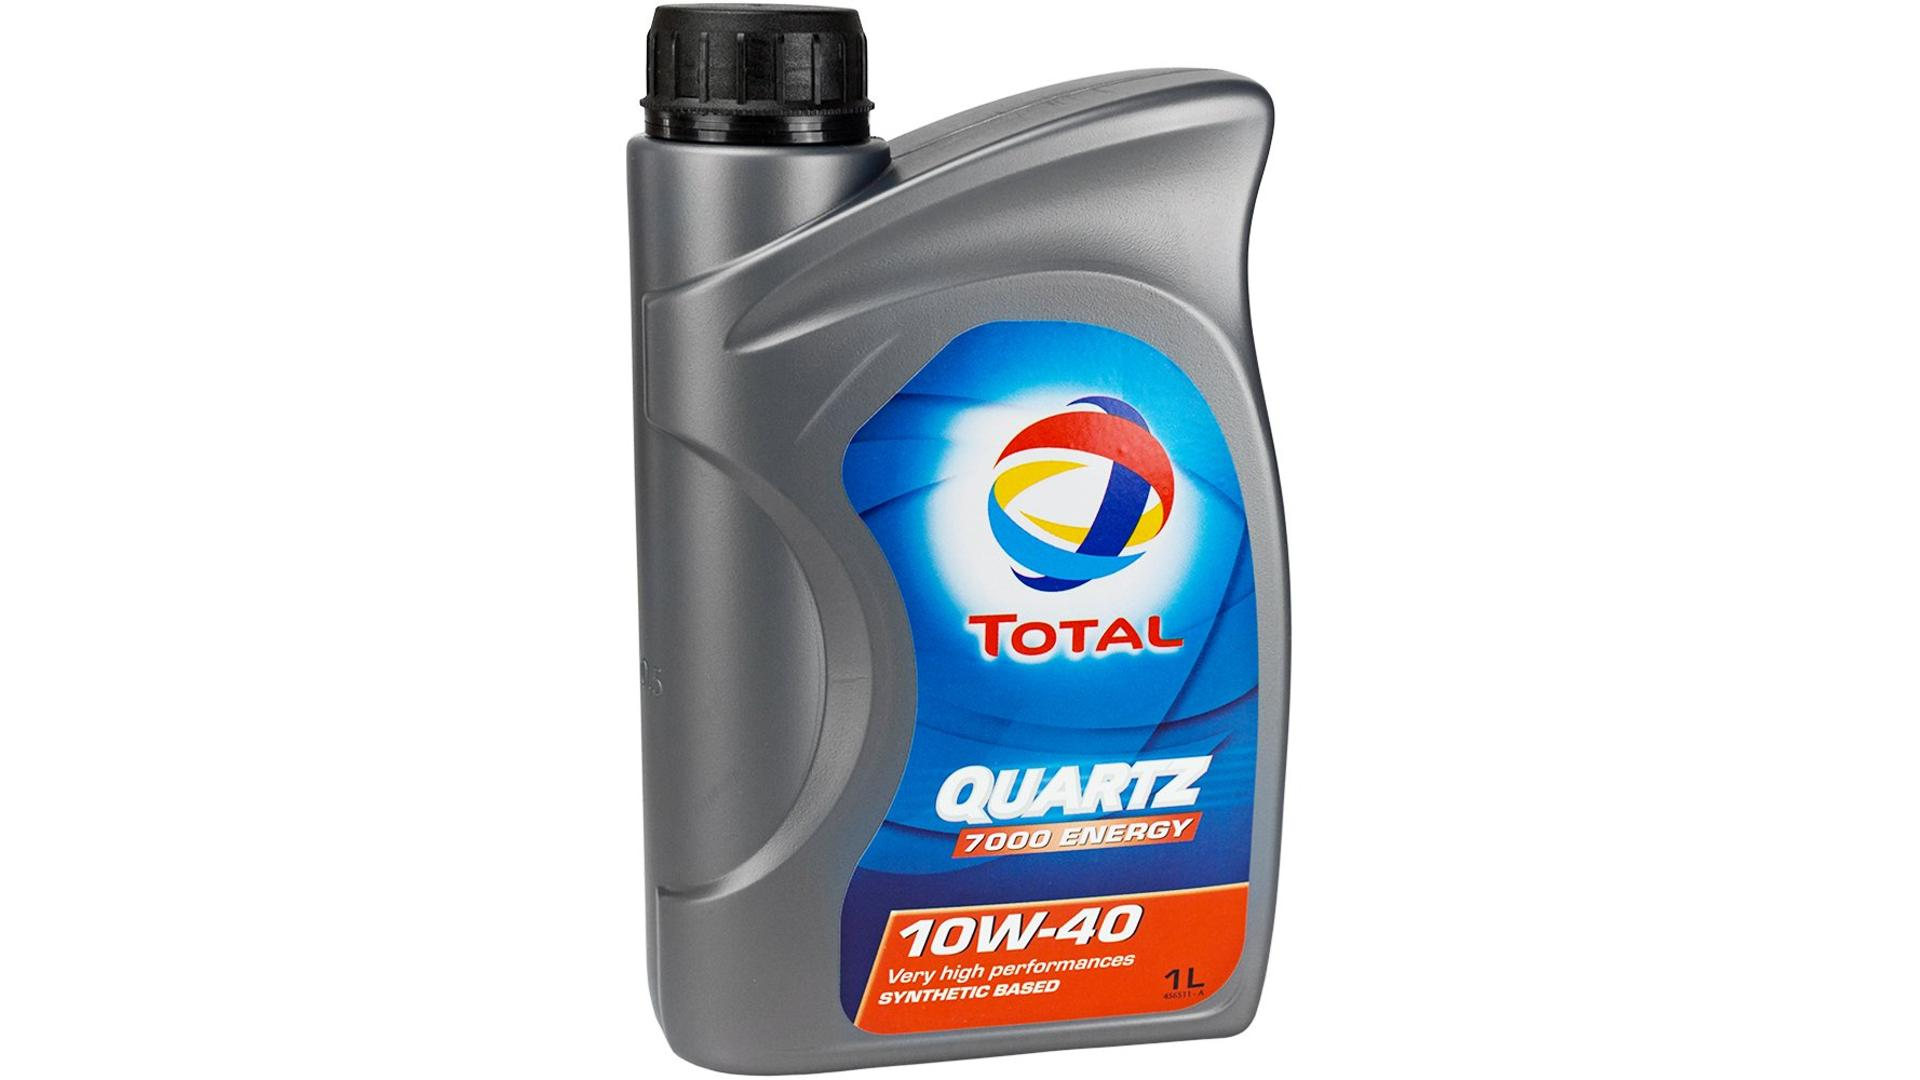 Total 10w-40 Energy 7000 1L (201535)